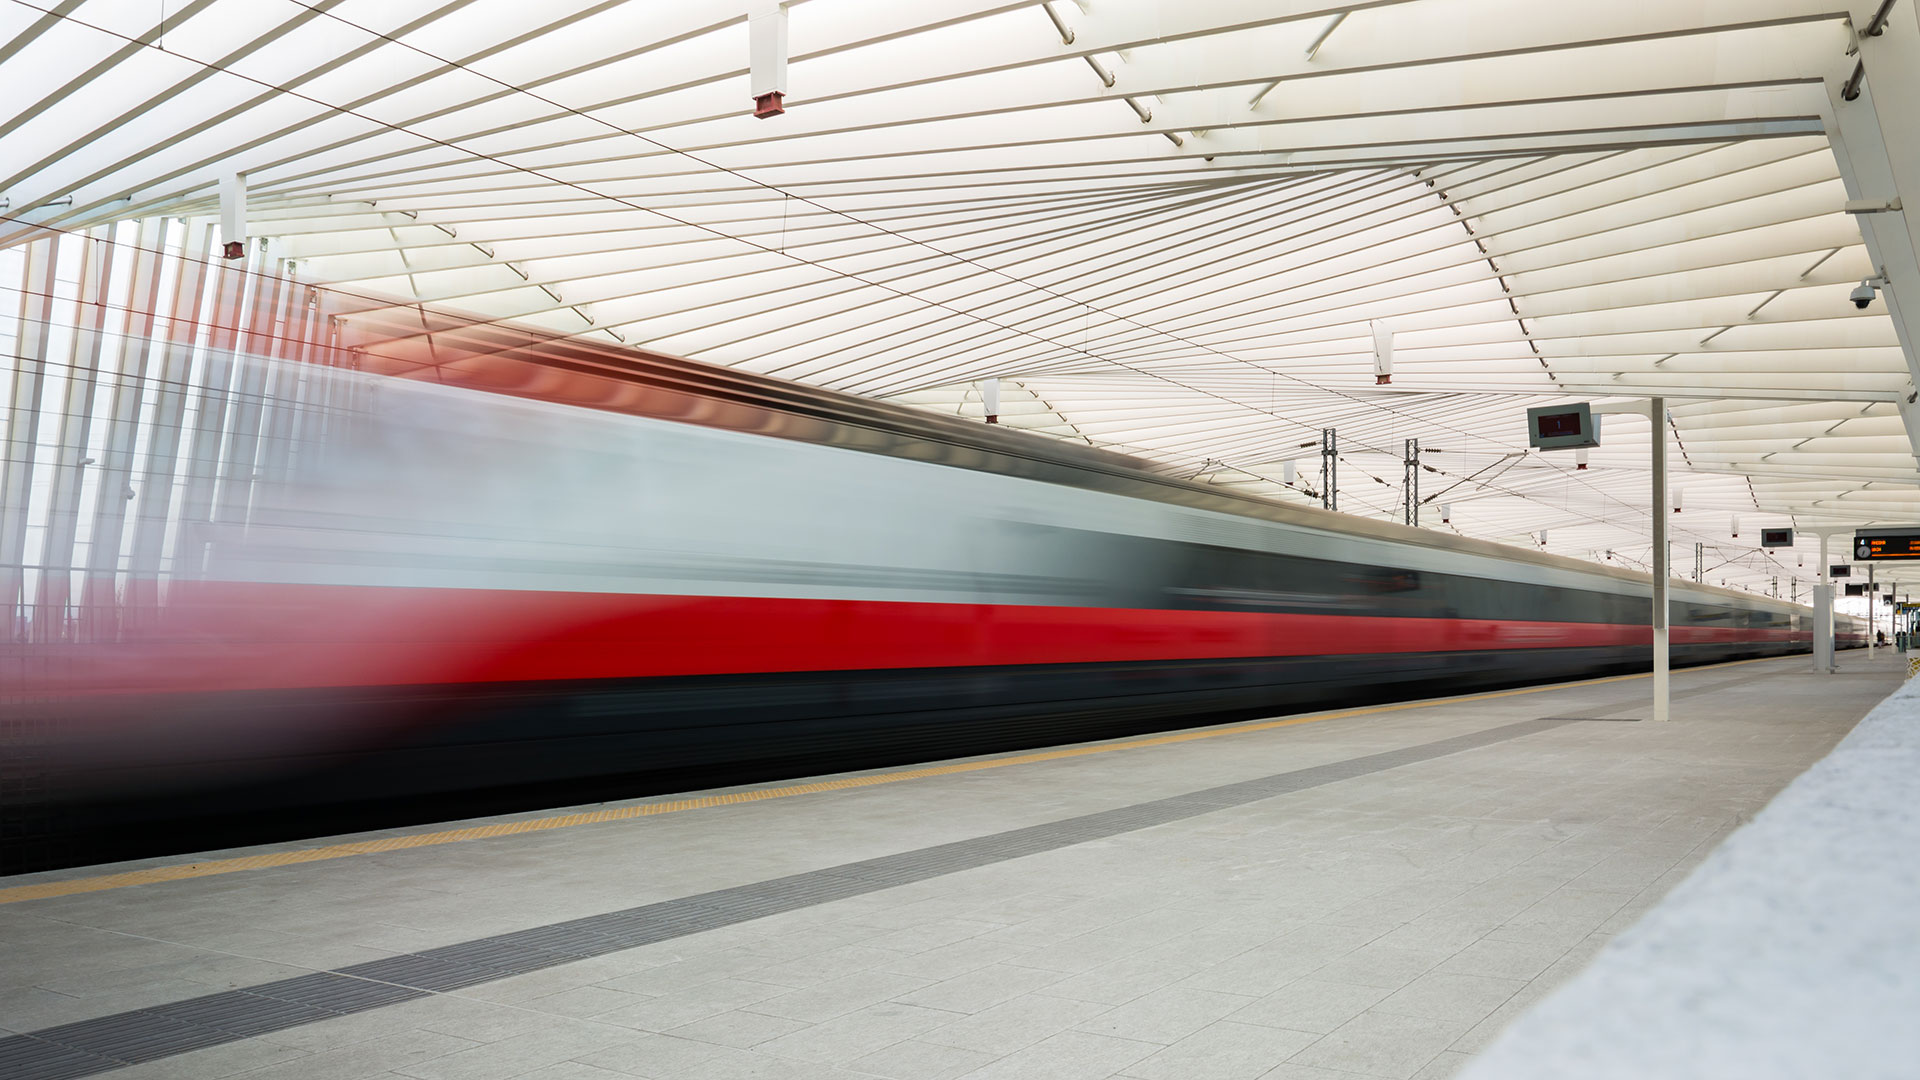 High Speed Station (Reggio Emilia) - iStock